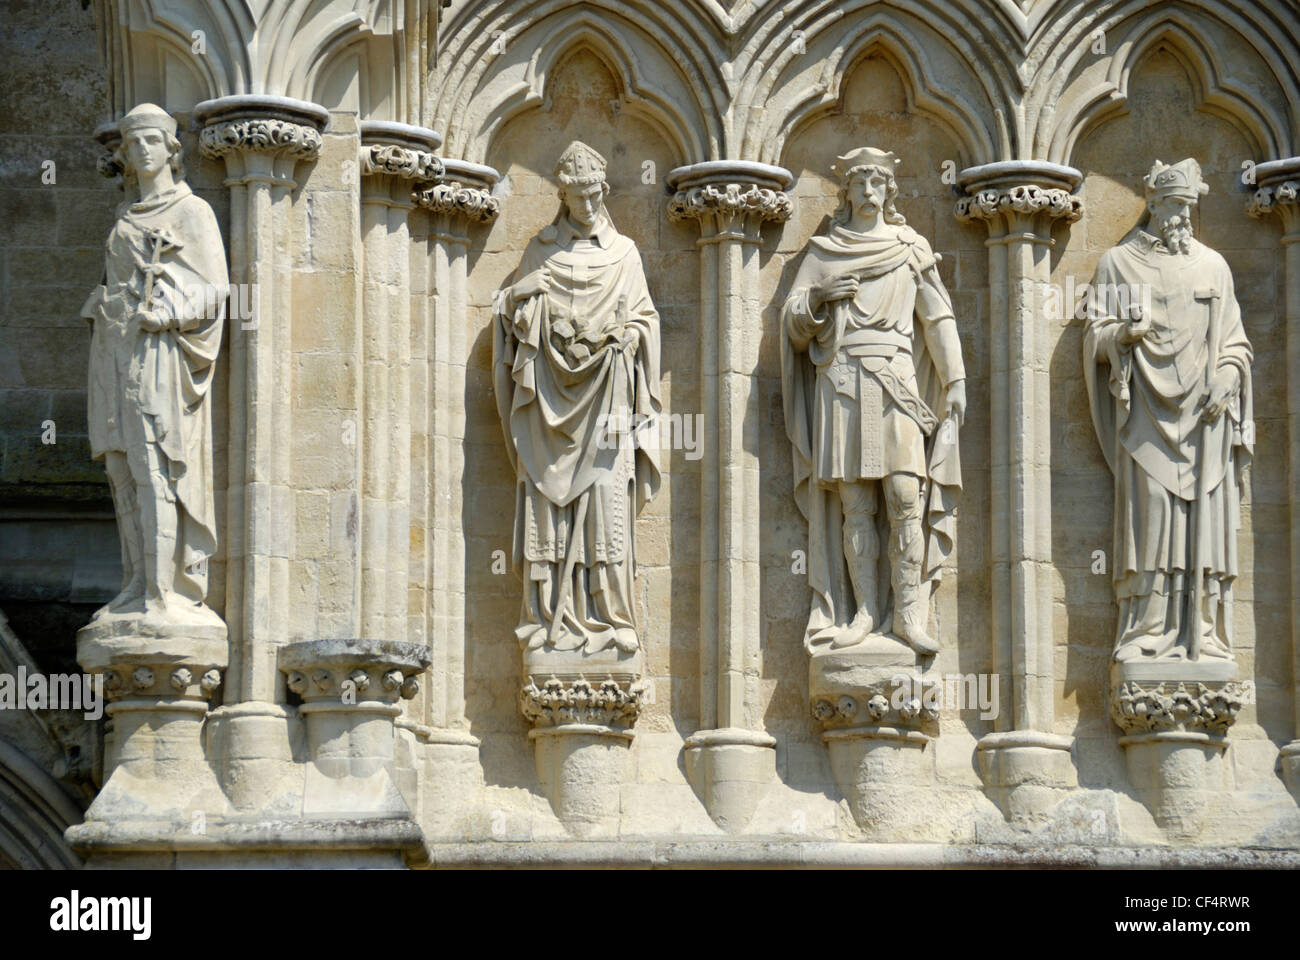 Statues of Saints and allegorical figures on the exterior of Salisbury Cathedral. - Stock Image